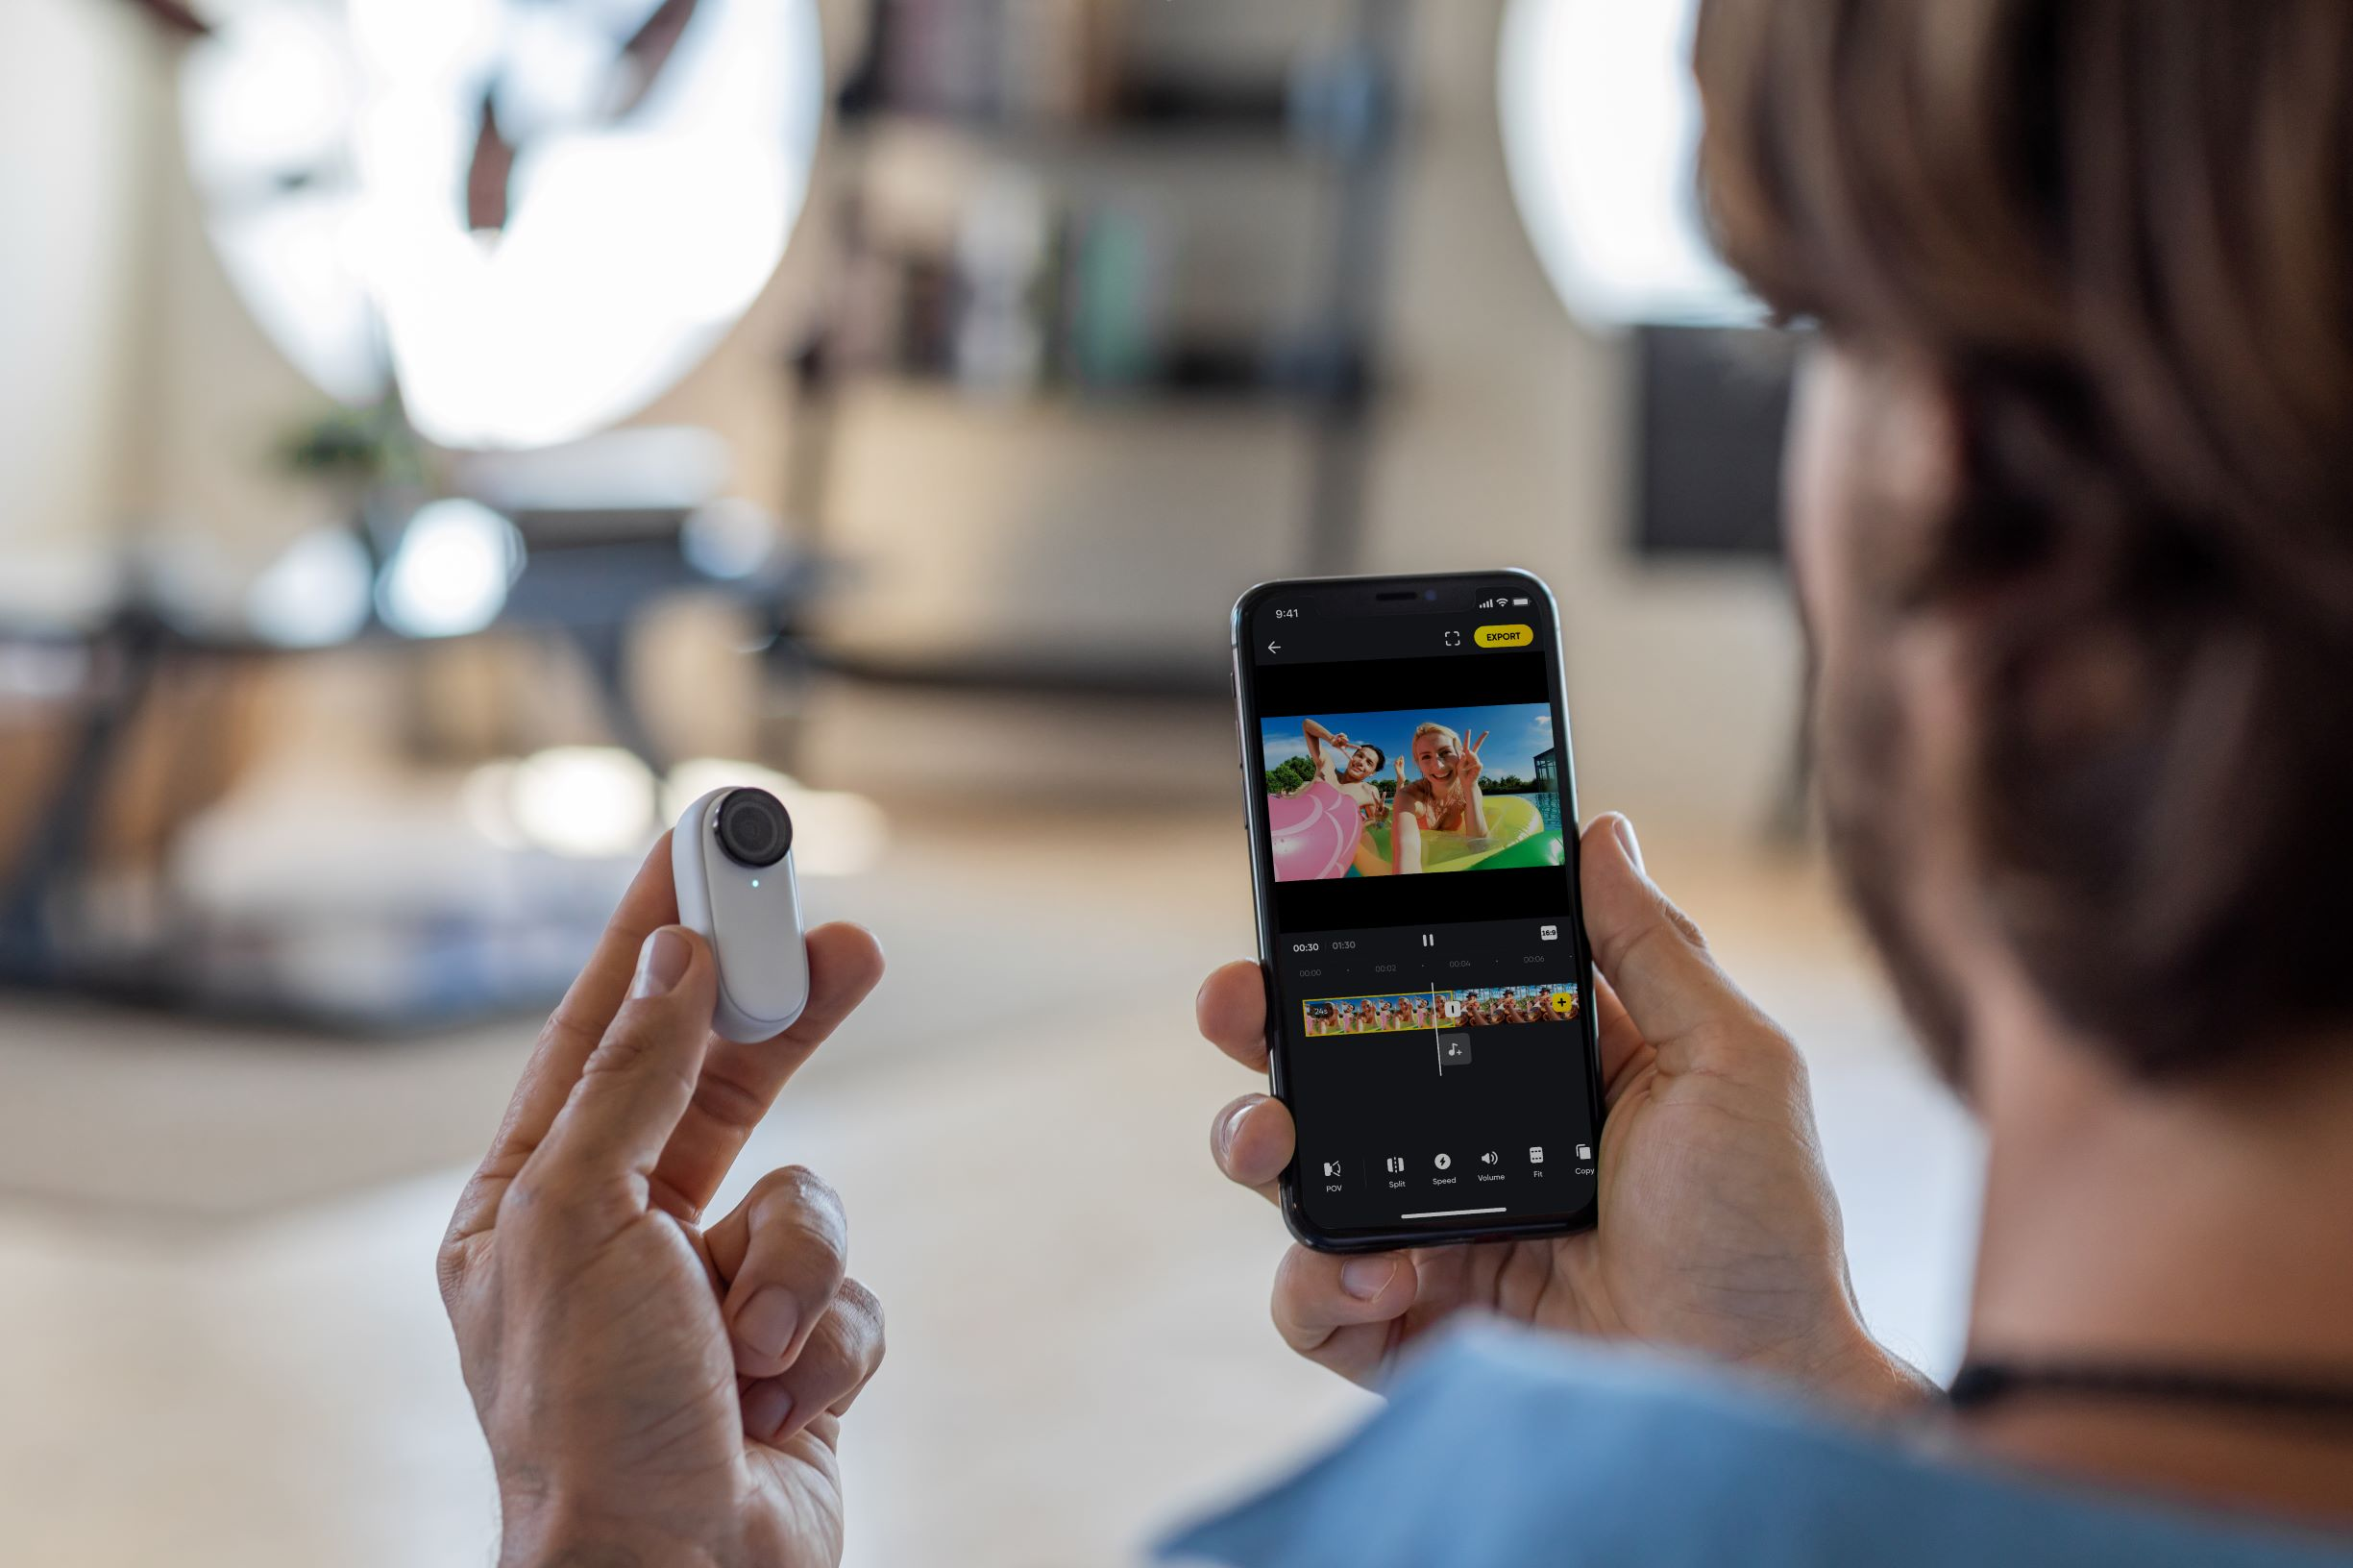 Insta360 GO 2 action cam with mobile app